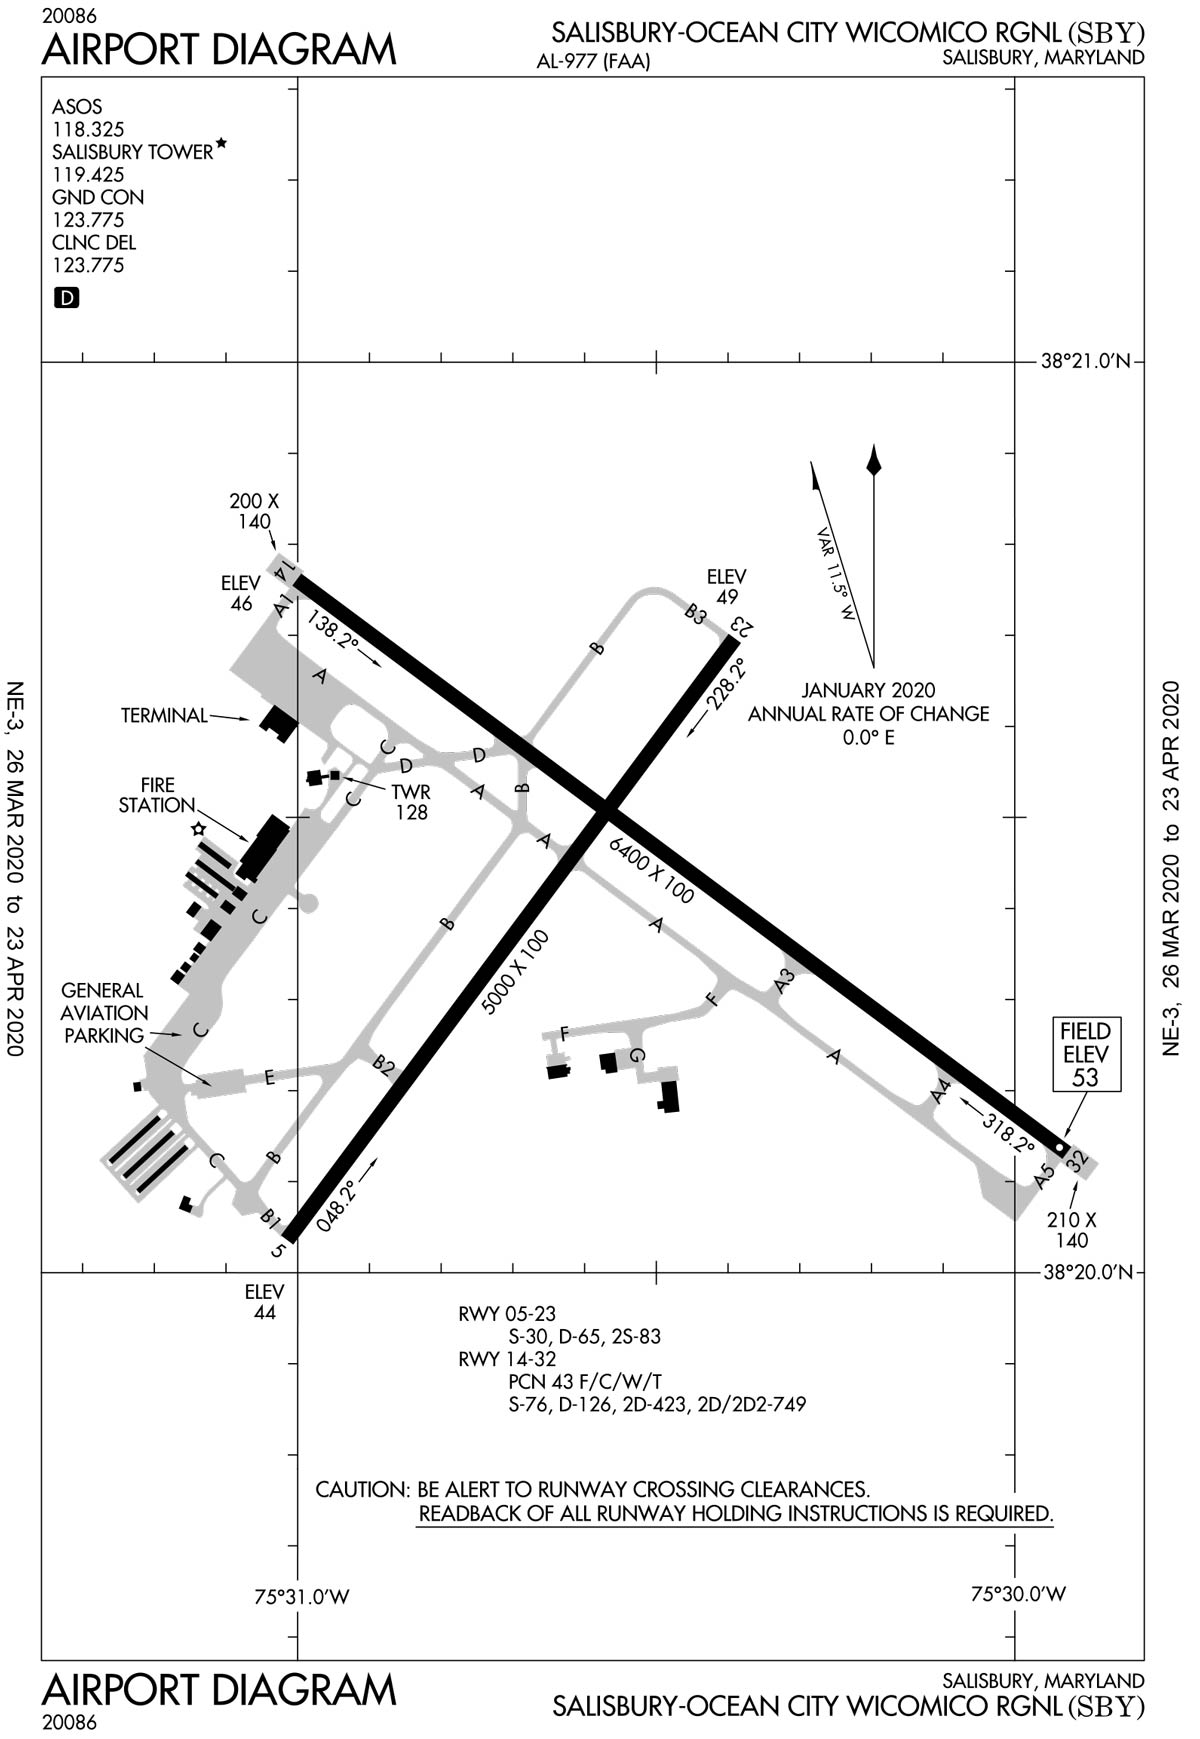 Salisbury Regional Airport overview diagram